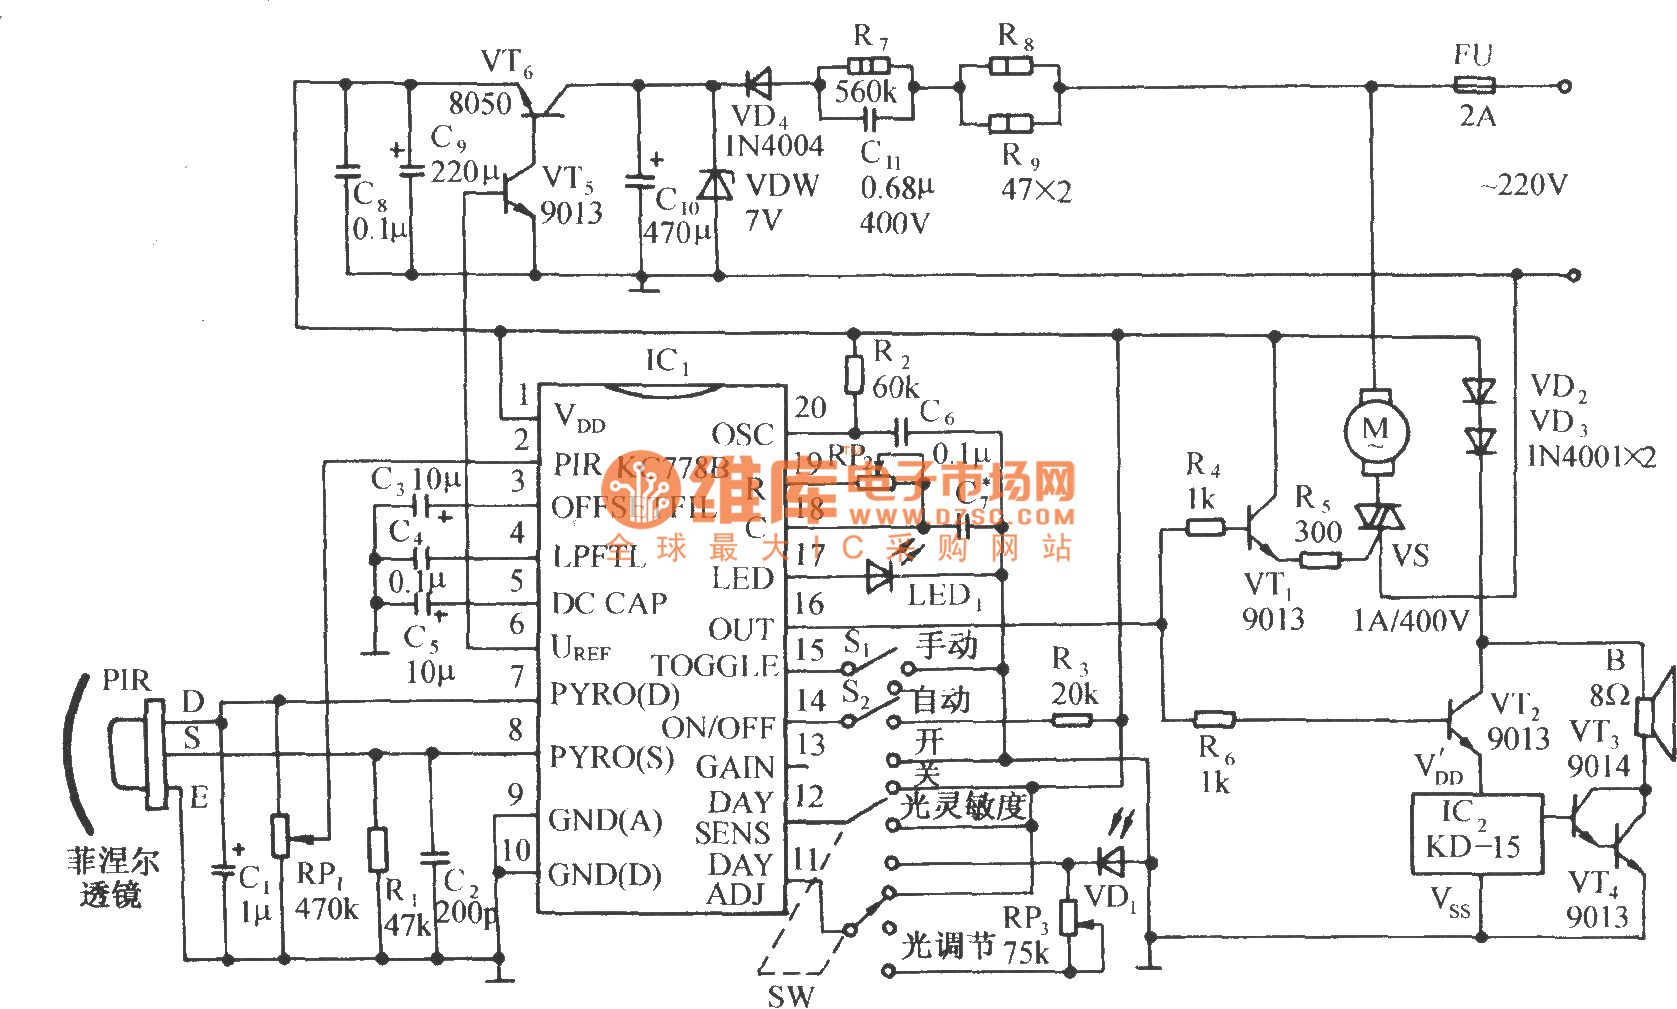 hight resolution of need ignition wiring diagram for 1997 saturn 4 door automatic about saturn sl1 timing chain on engine diagram pic2fly 1999 saturn sl1